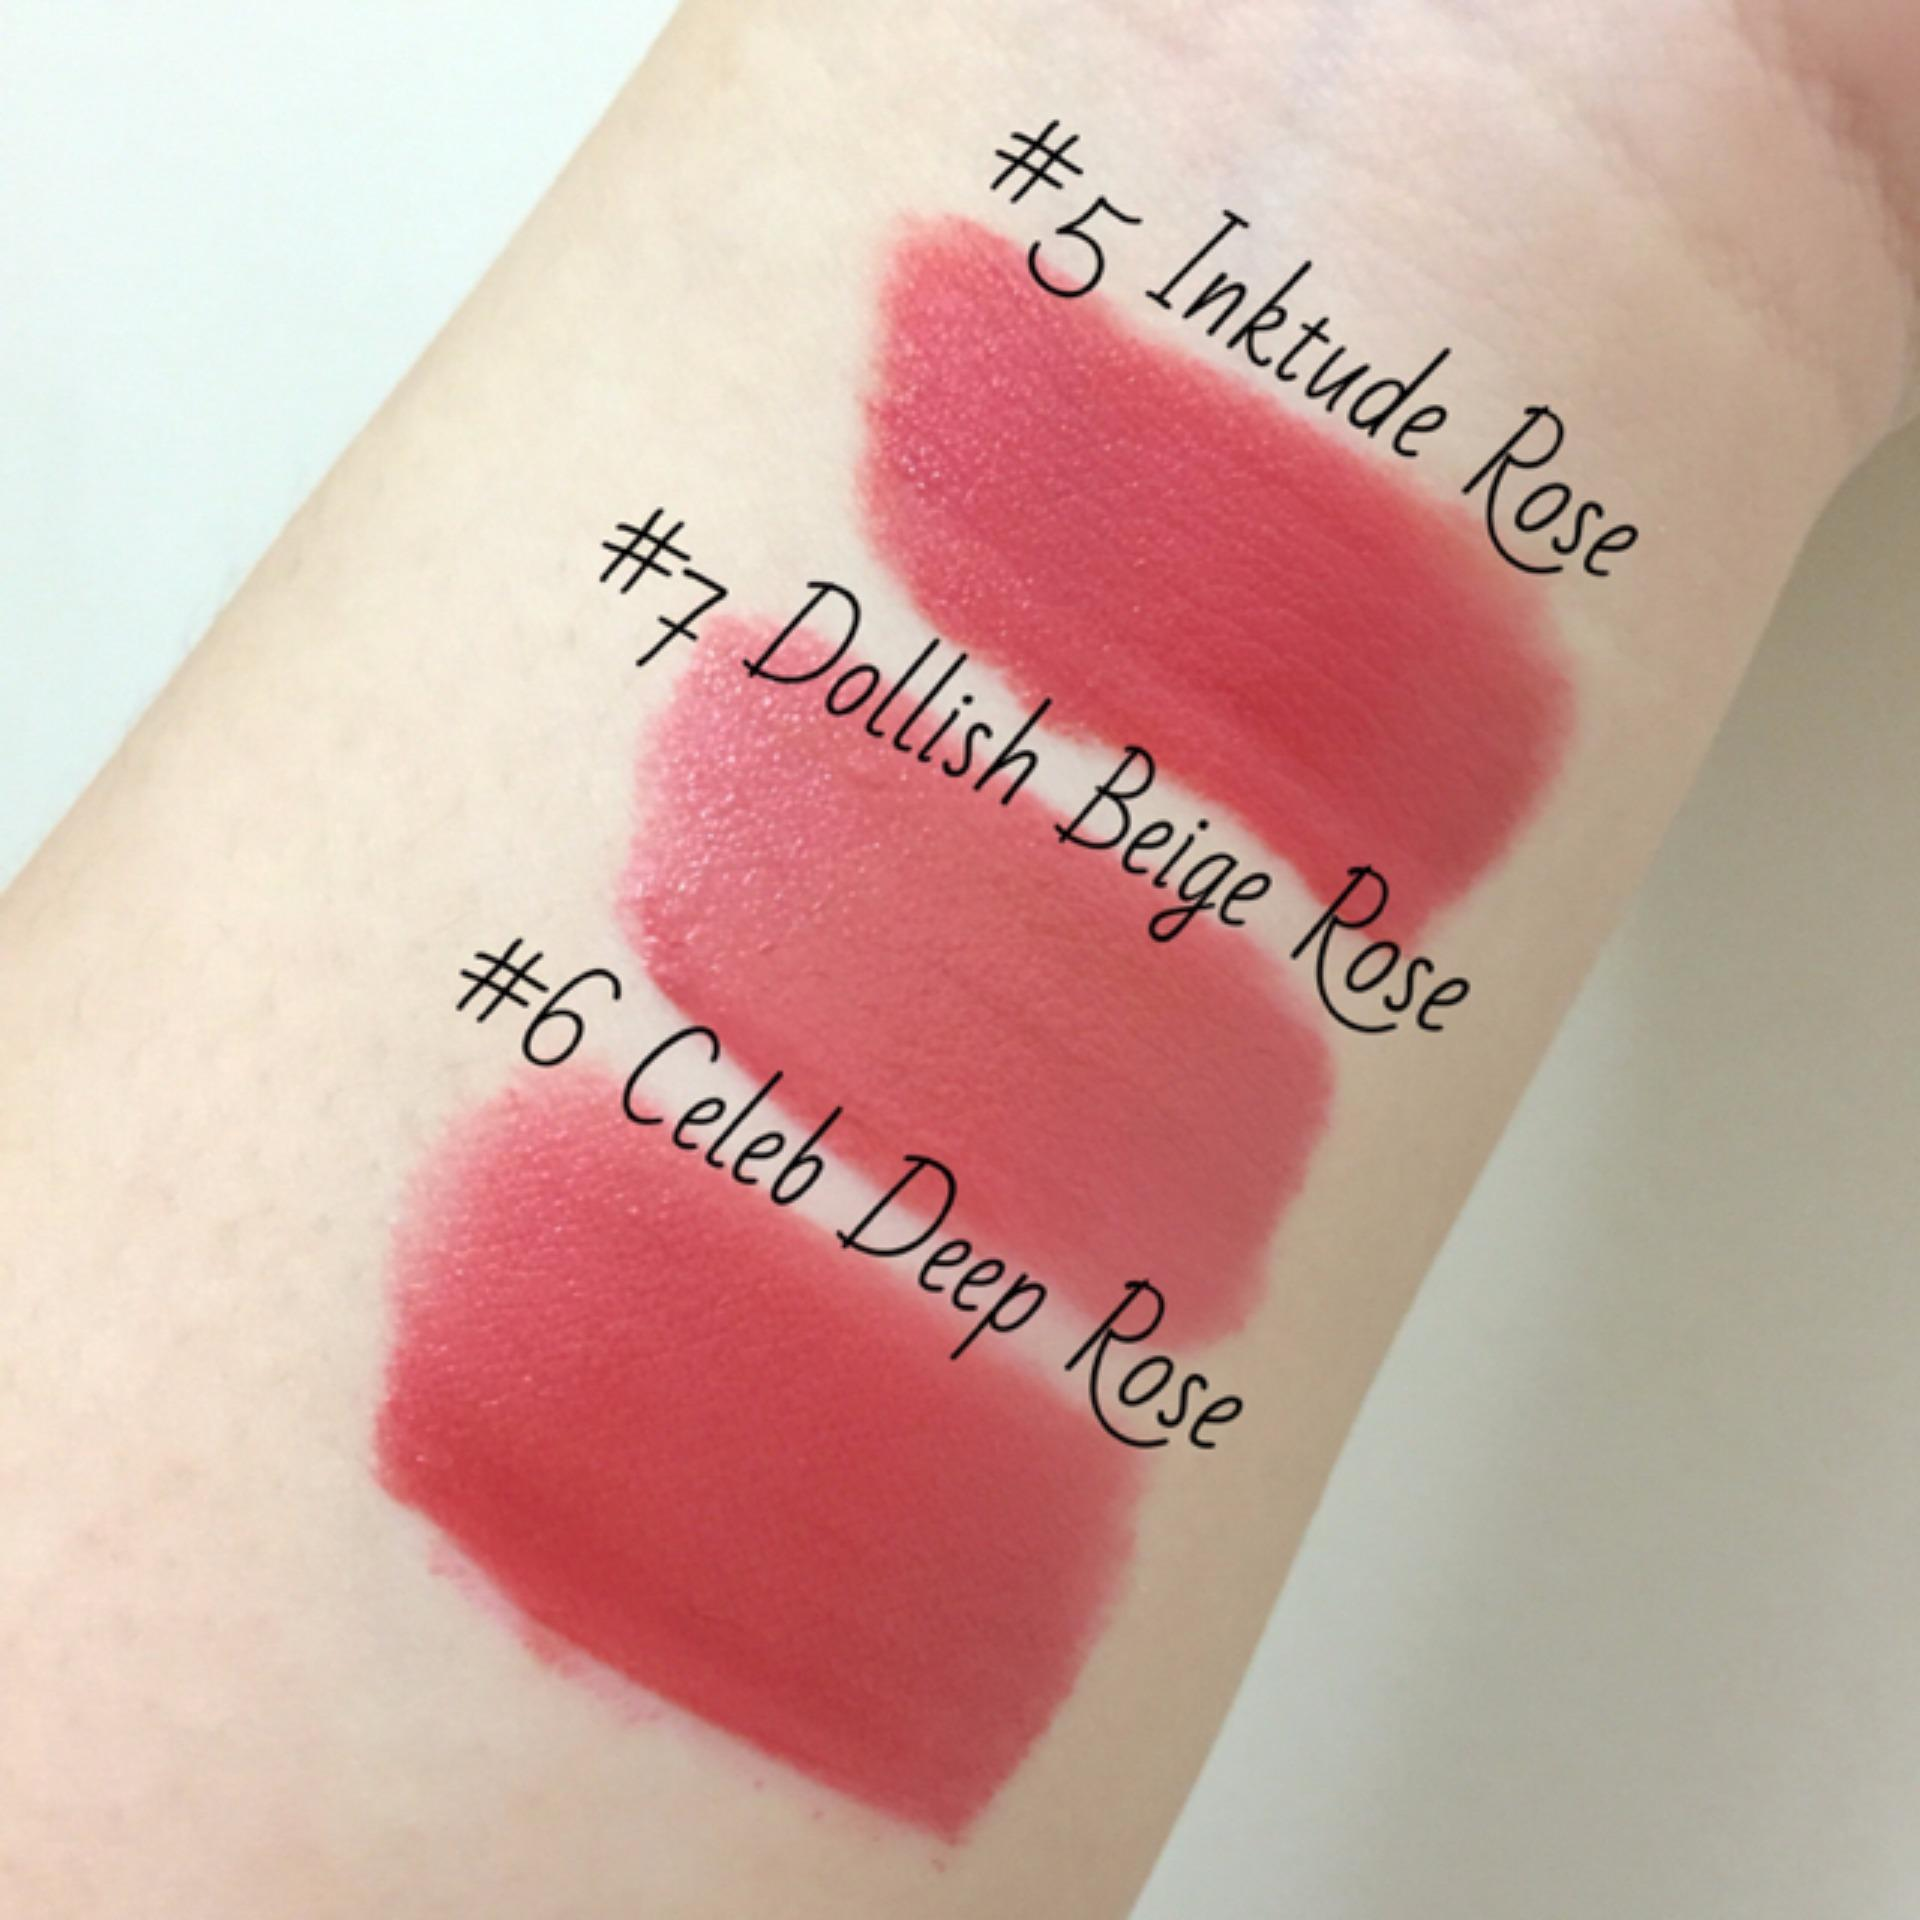 Peripera Peri39s Ink The Velvet In Celeb Deep Rose Review Korean Airy 8g Original Peris 06